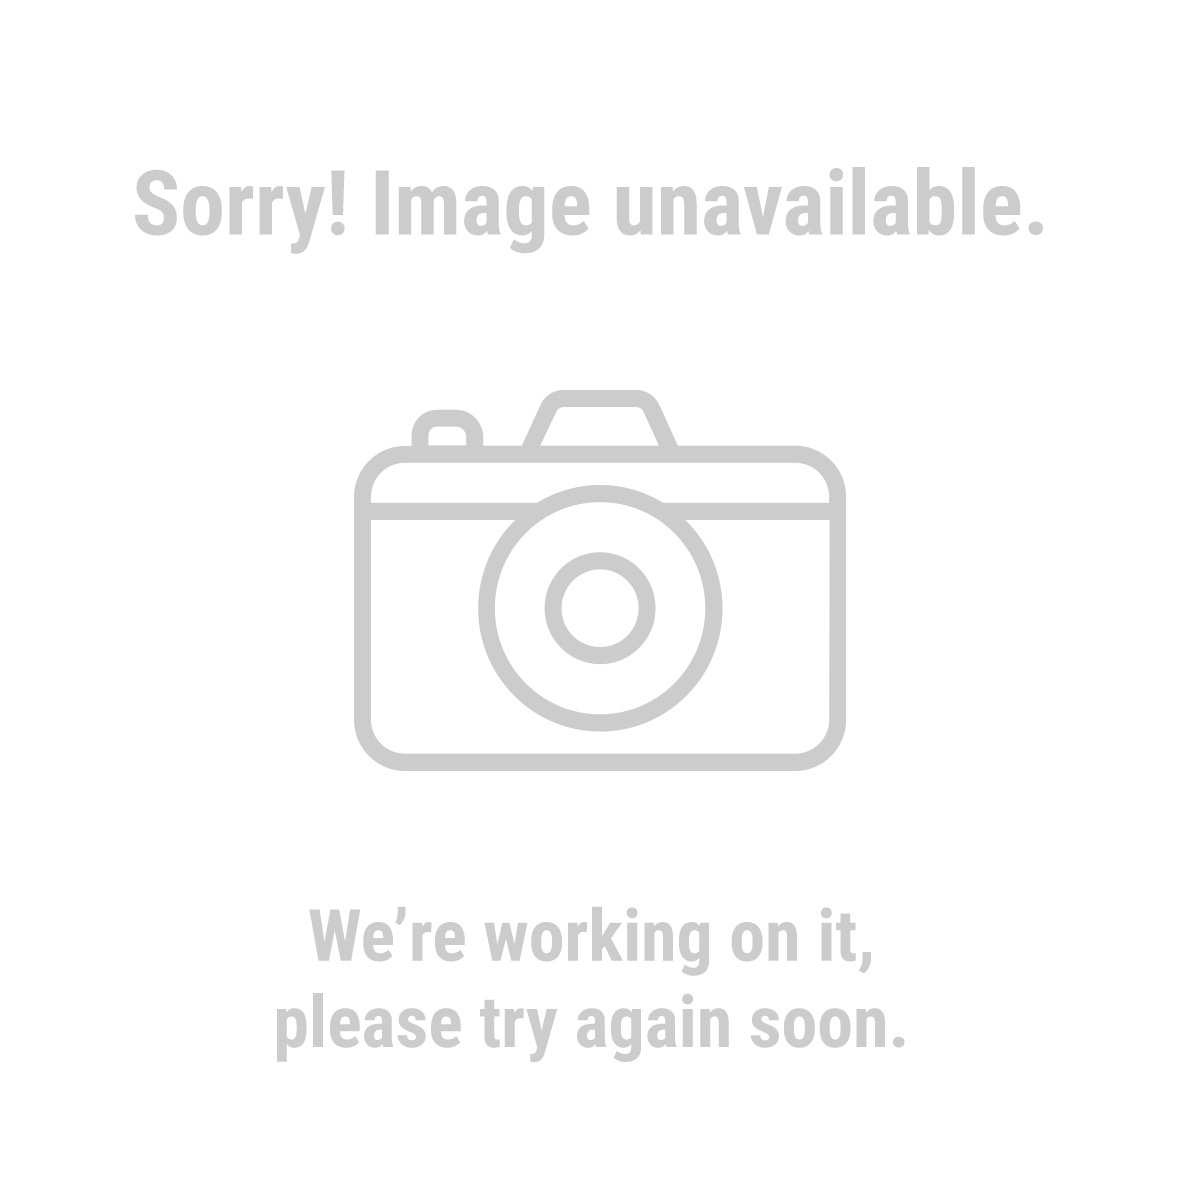 Predator Outdoor Power Equipment 61594 20 ton Log Splitter